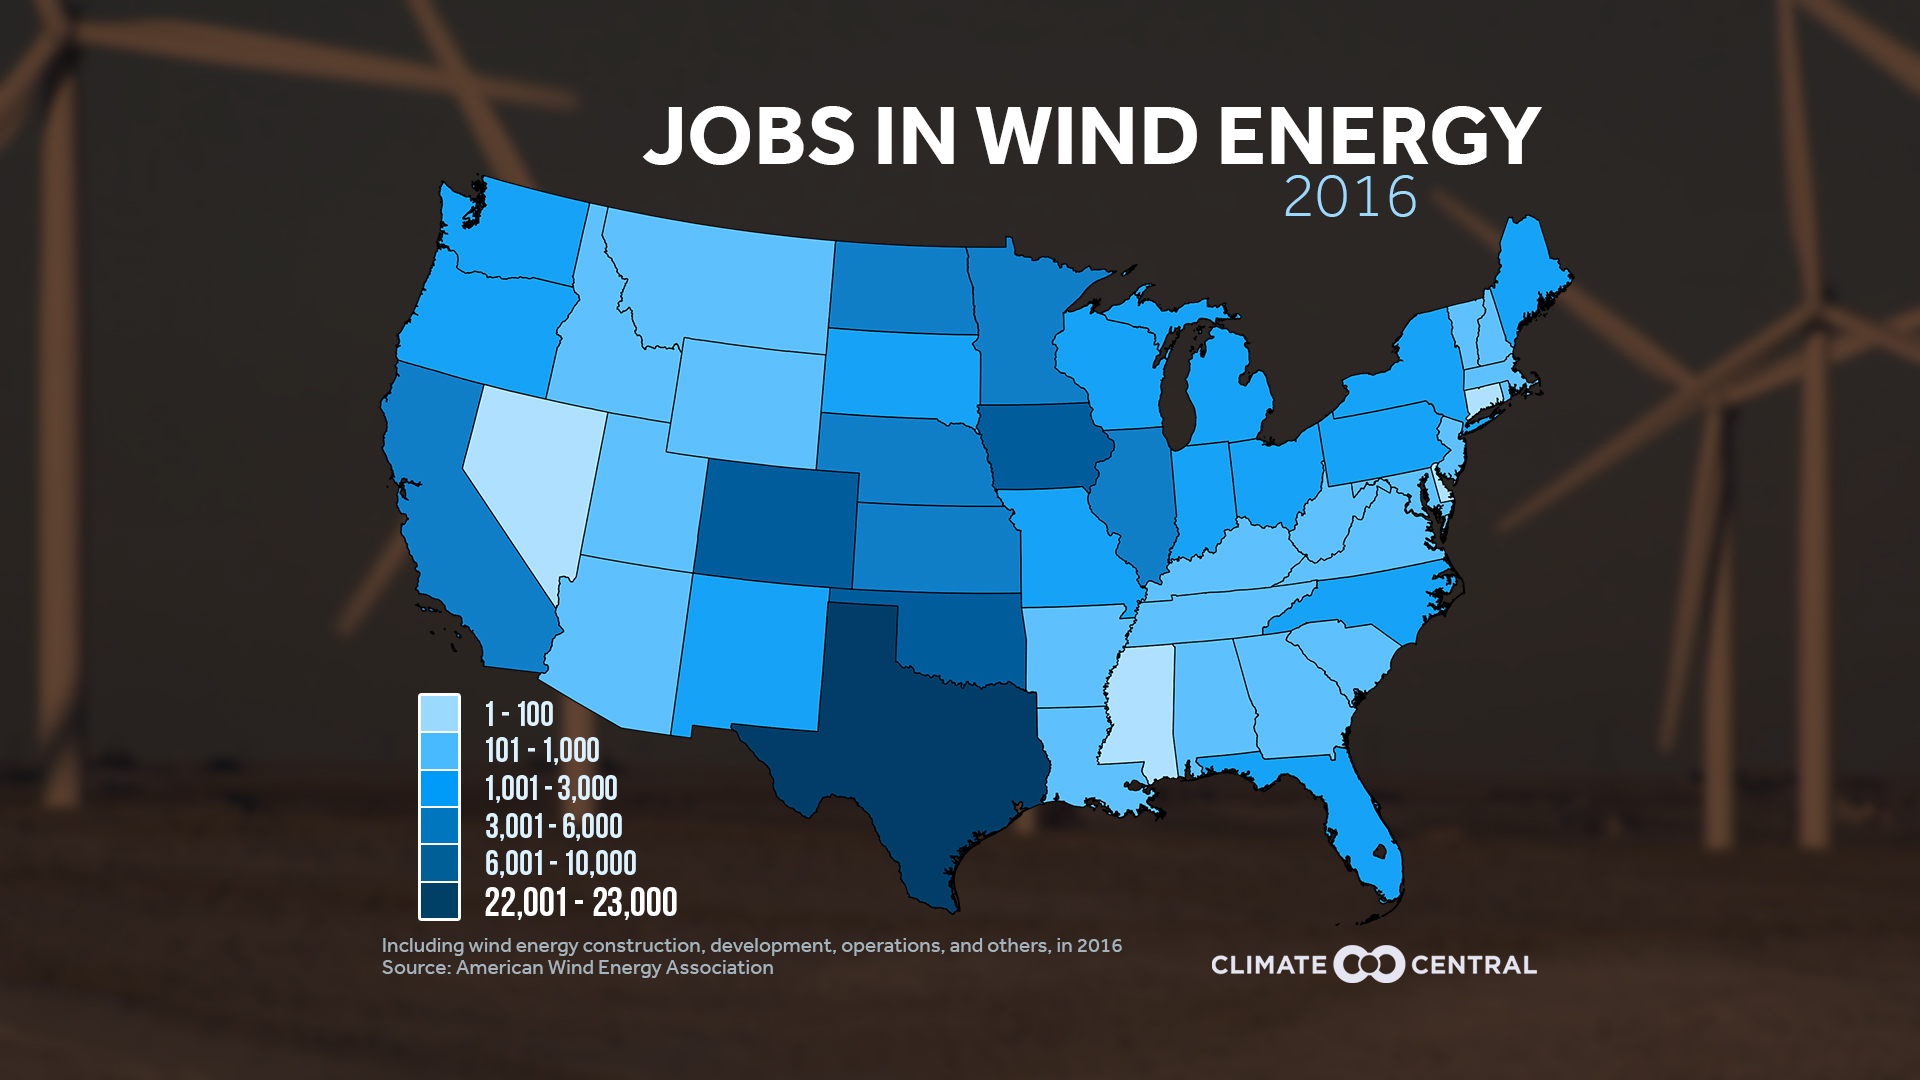 Job growth from wind energy in each state